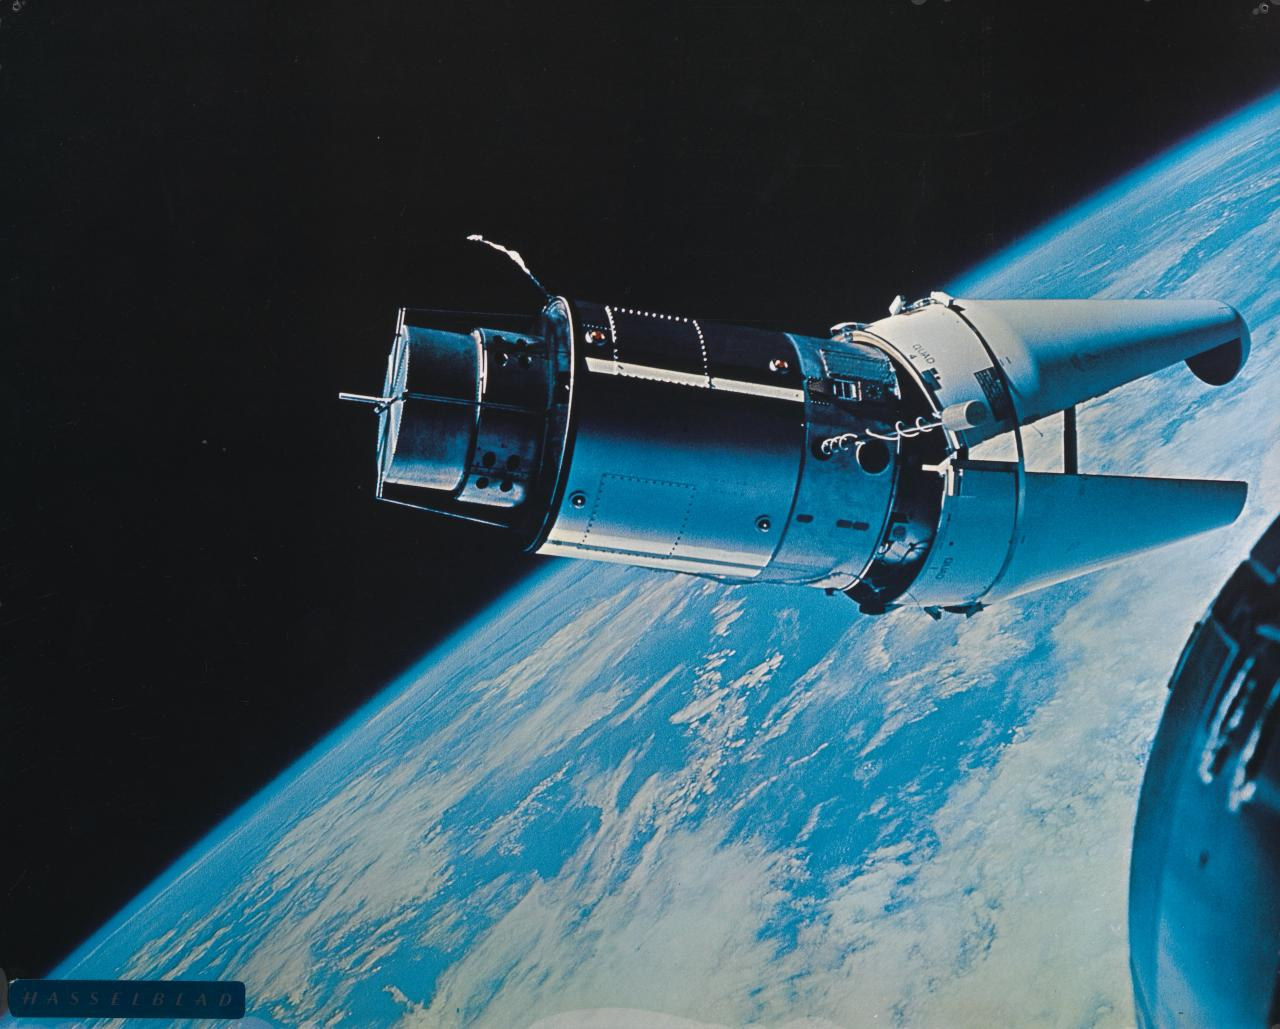 Atda Alligator tether with Gemini 9 for space stroll